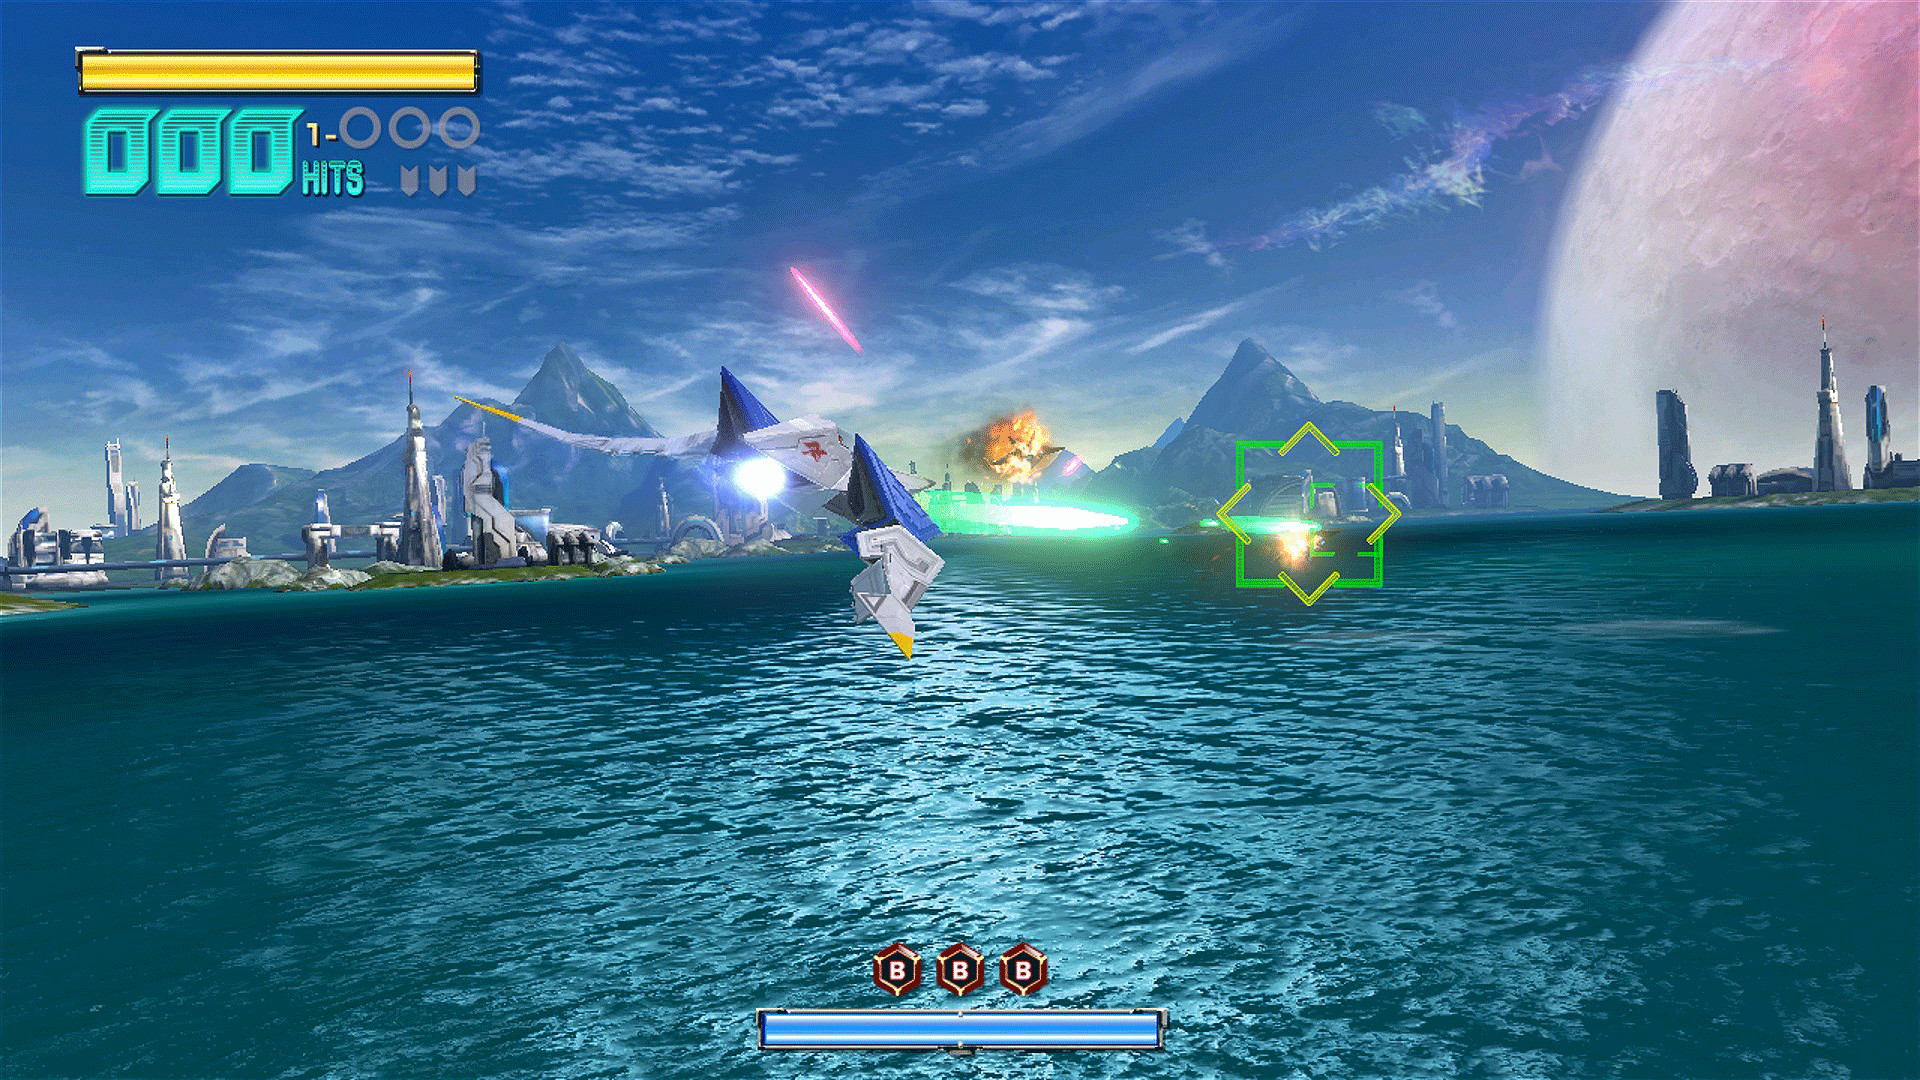 Nintendo's 'Star Fox Zero' is one of a kind, but is it playable? – LA Times